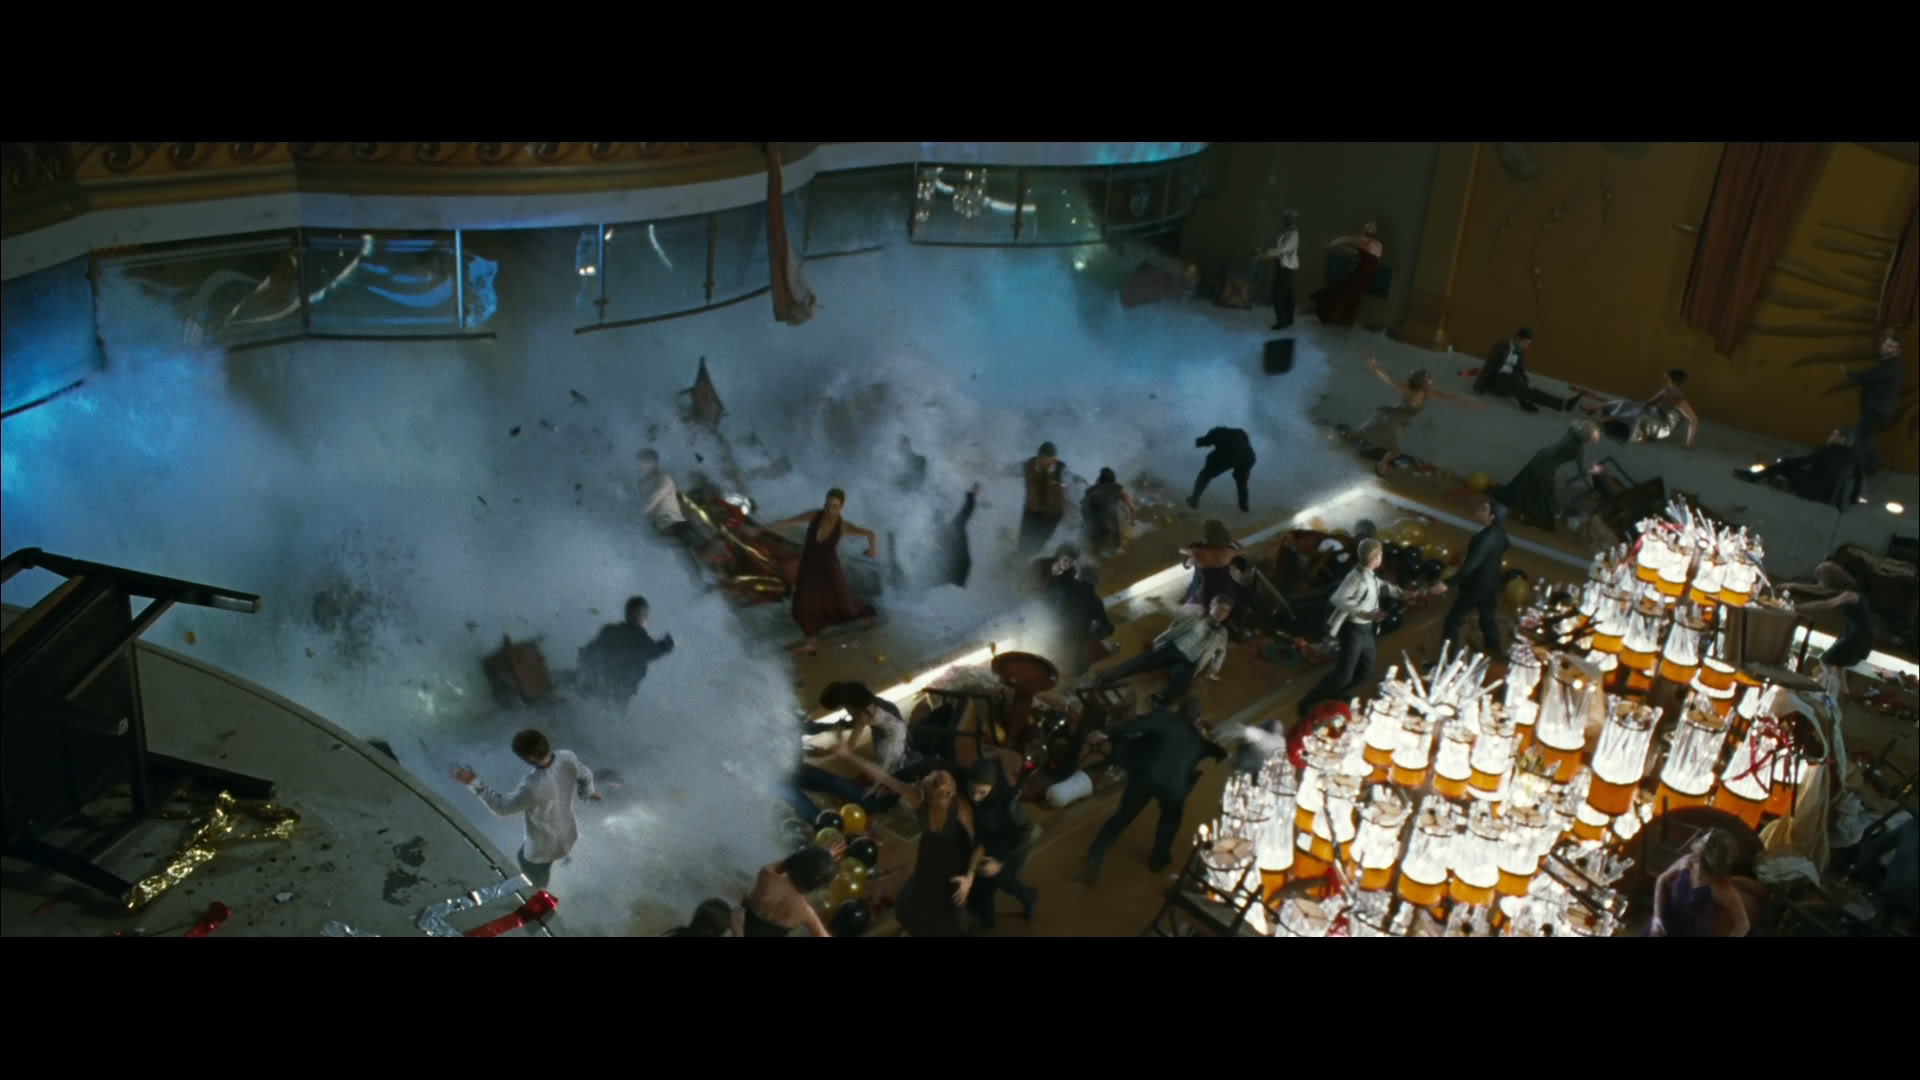 POSEIDON images Ballroom flood. HD wallpaper and ...